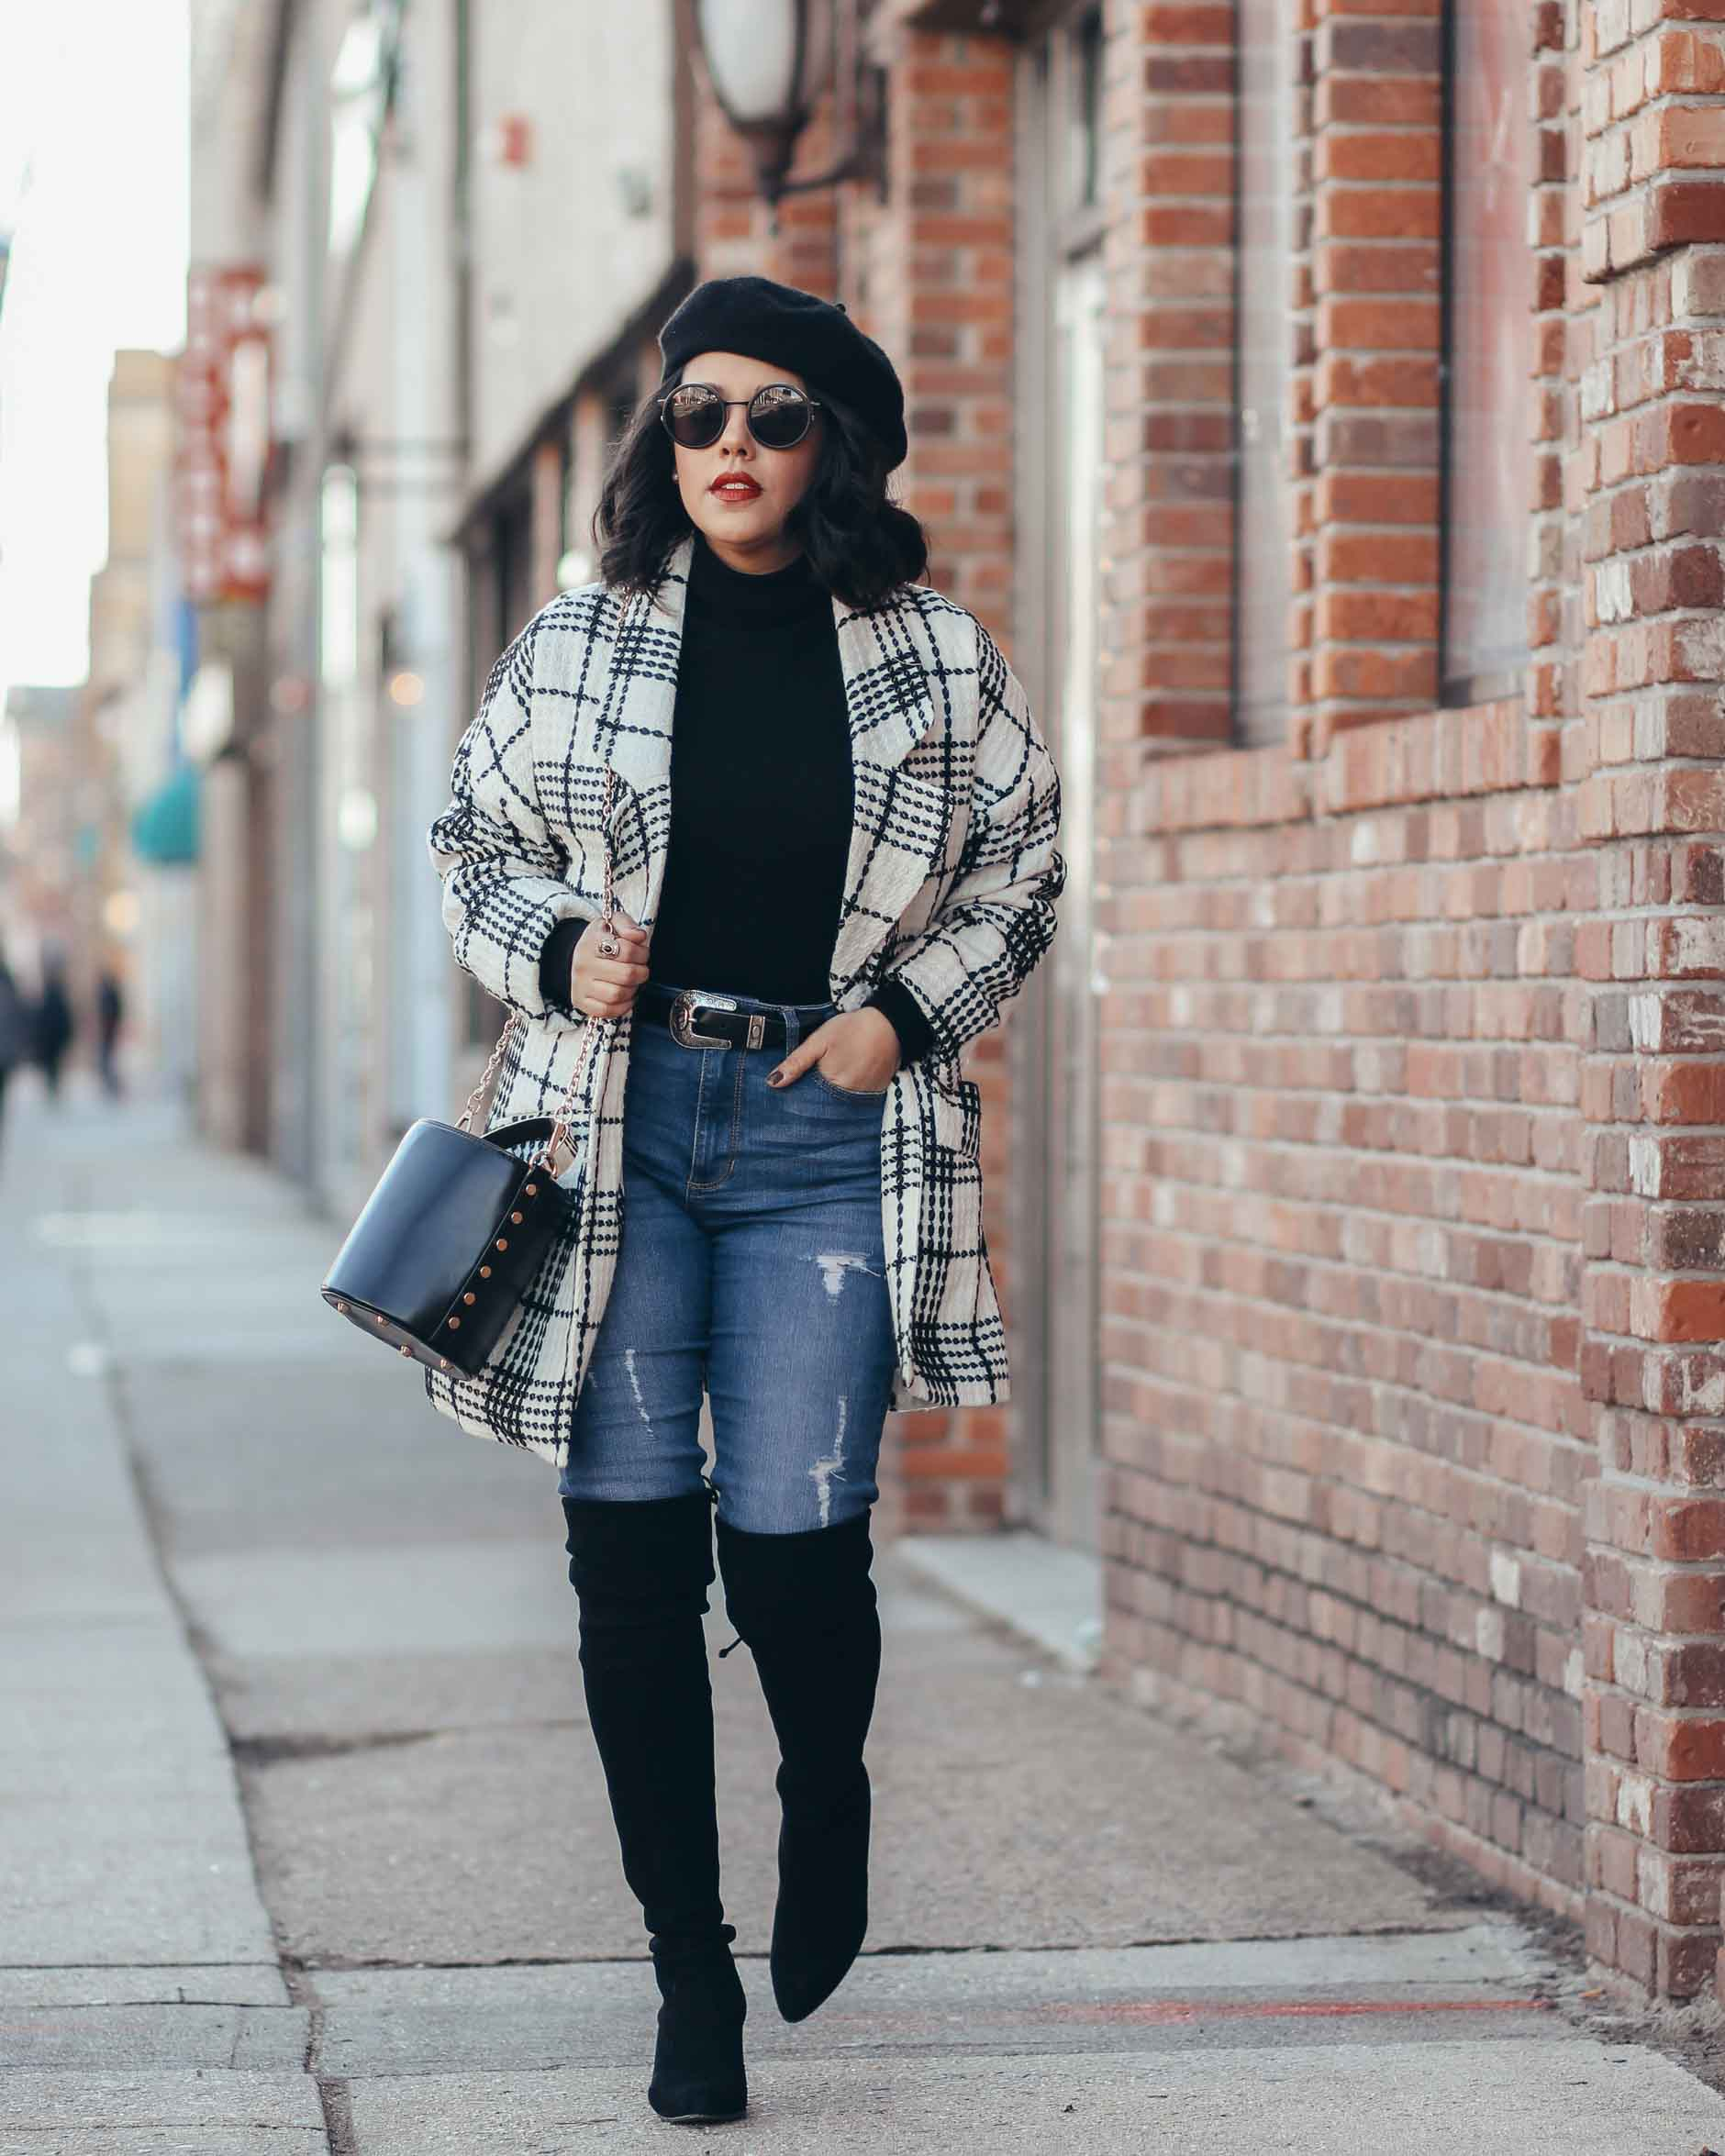 lifestyle blogger naty michele walking in denim with otk boots and a beret